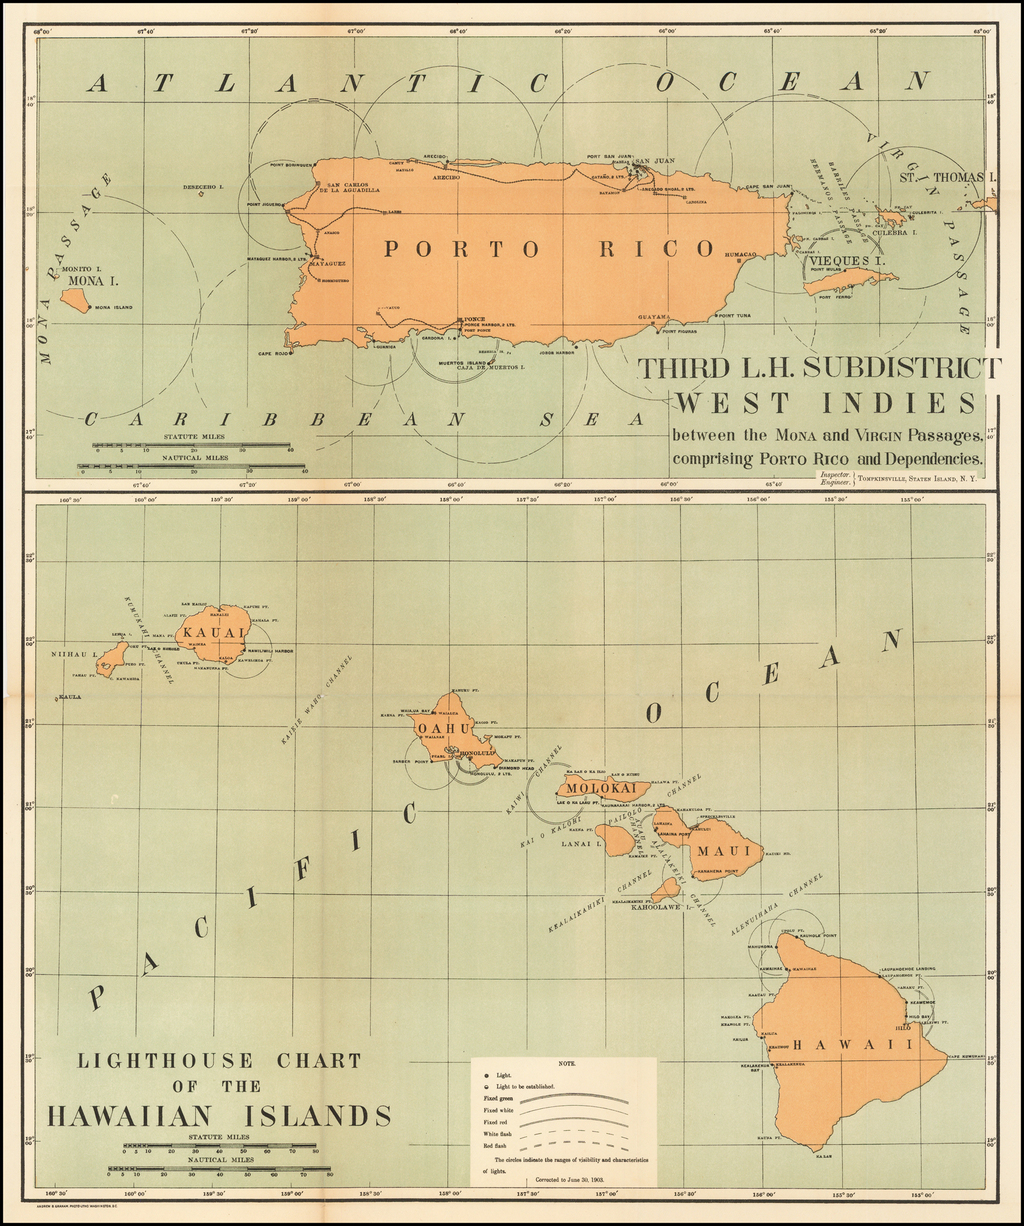 (Hawaii & Puerto Rico)  Lighthouse Chart of the Hawaiian Islands (and) Third L.H. District West Indies between Mona and Virgin Passages, comprising Porto Rico and Dependencies. By Andrew B. Graham